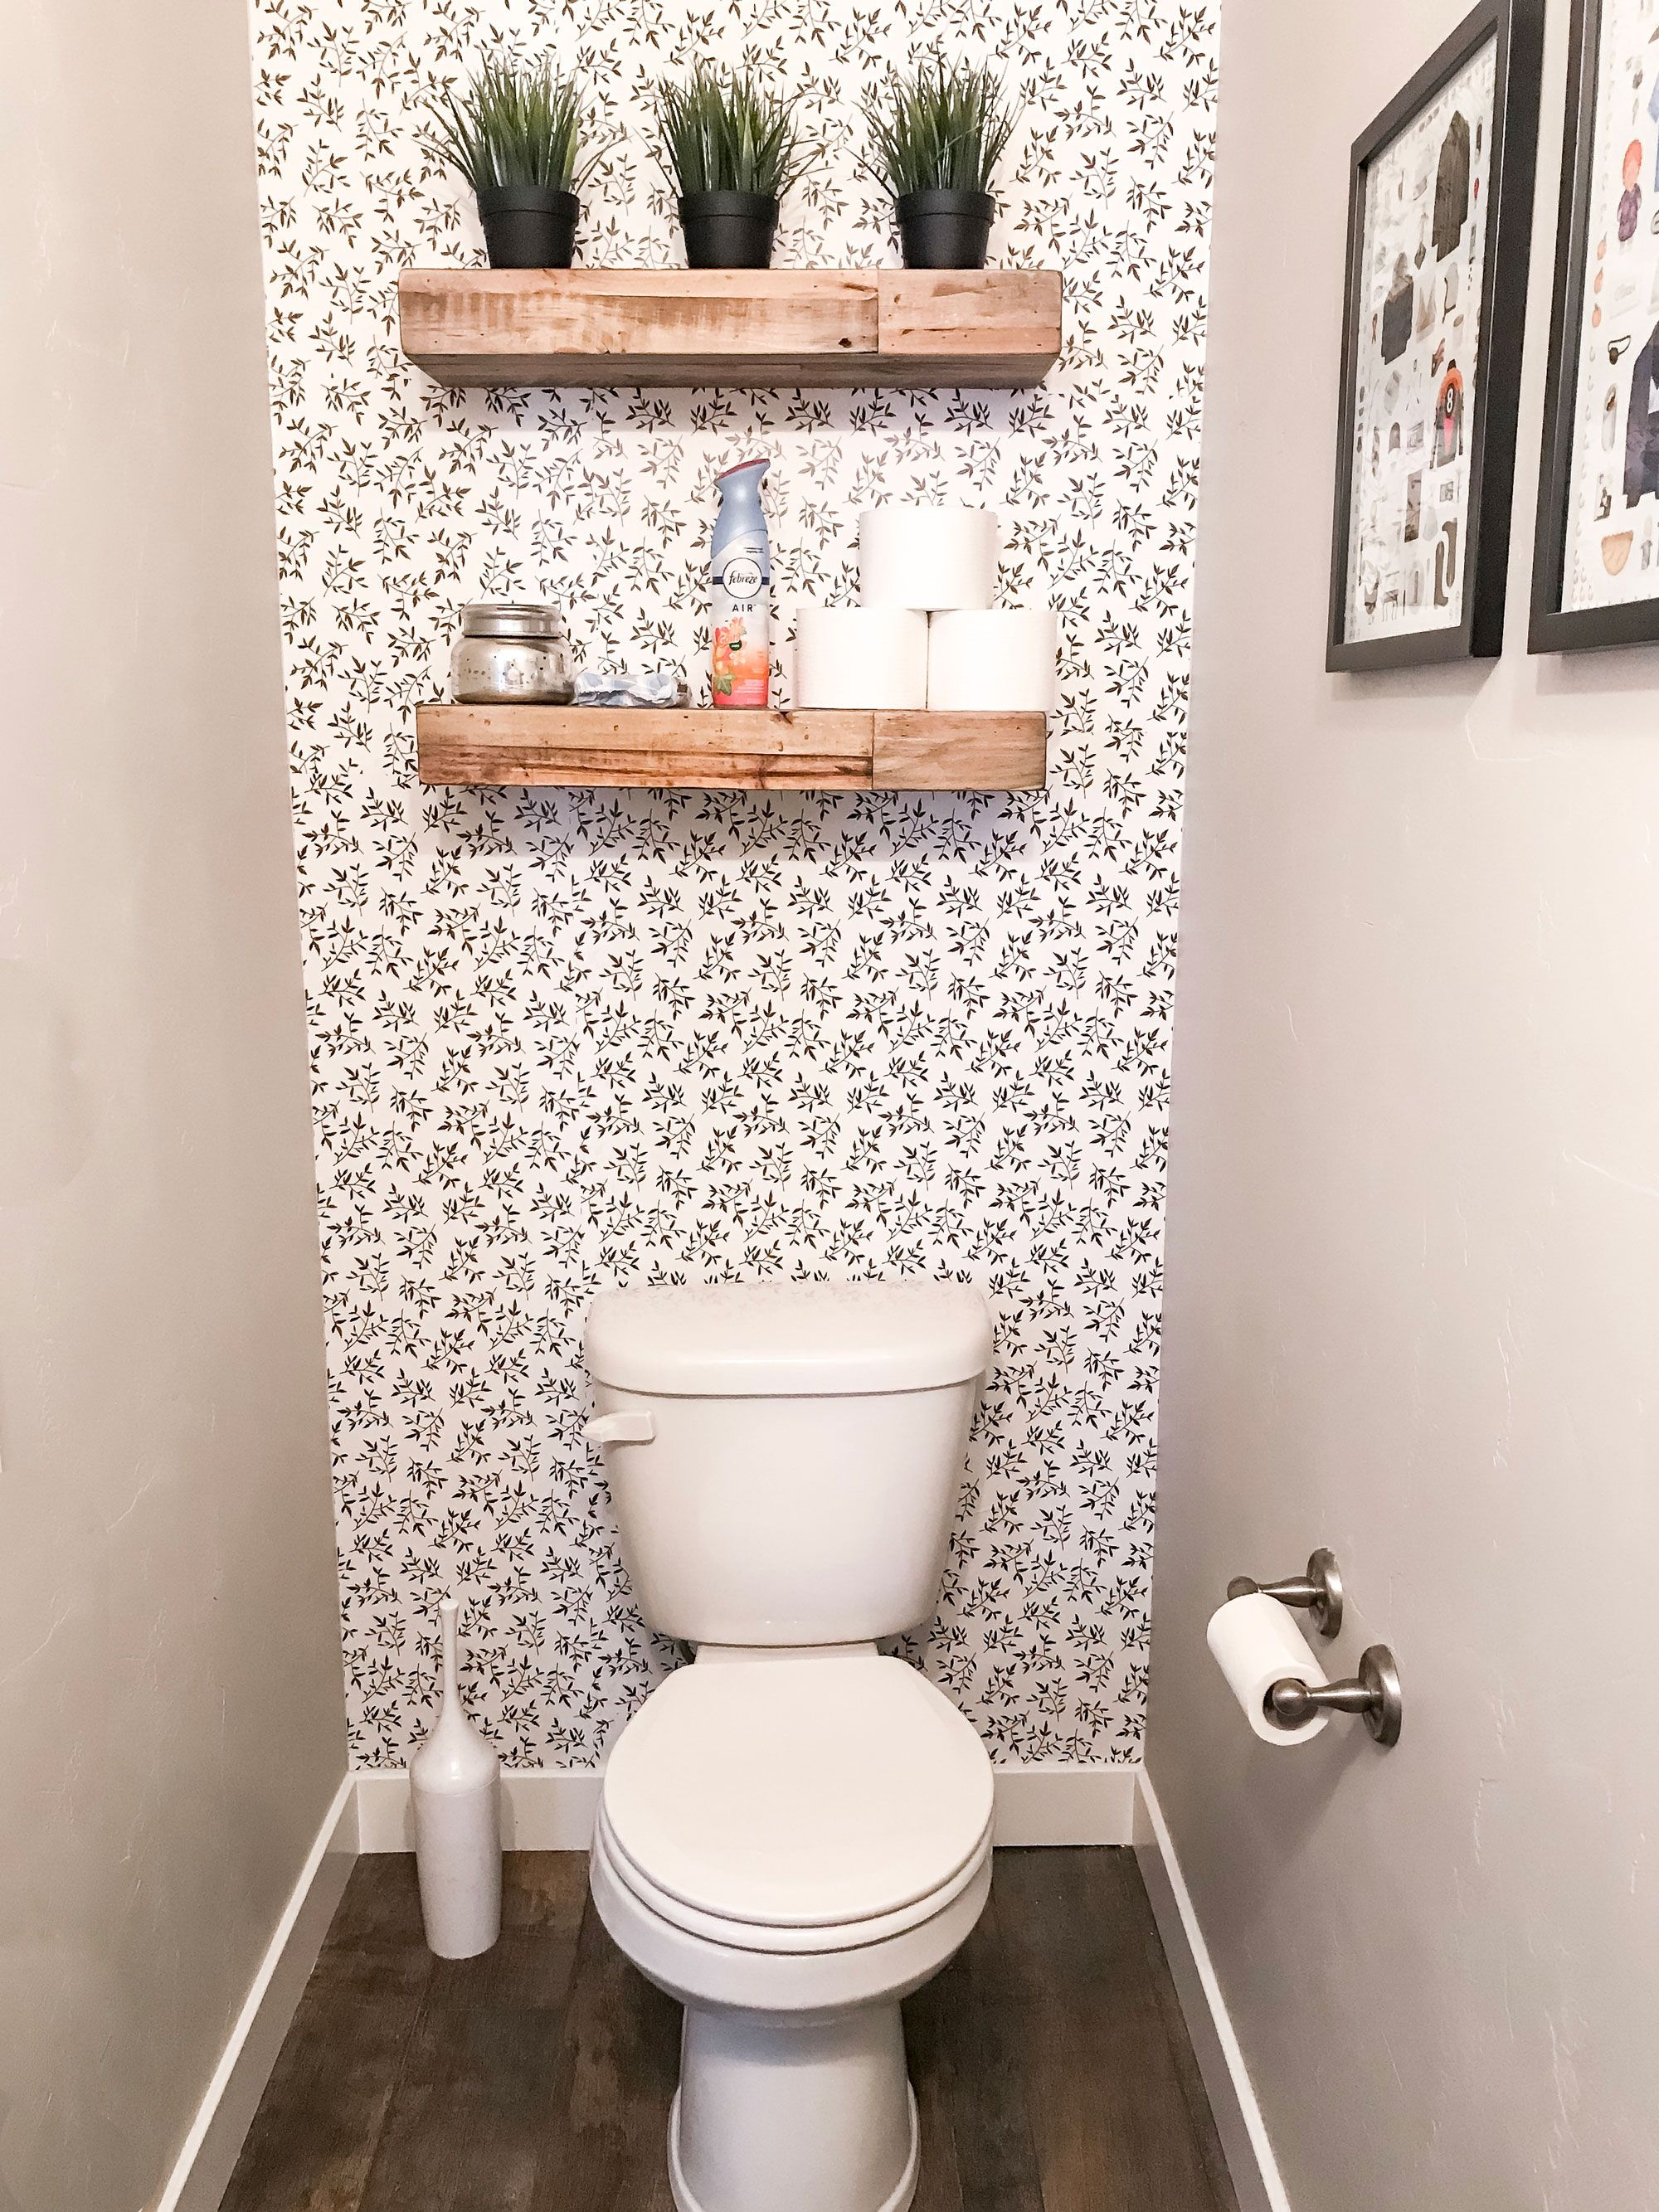 Easily Transform A Small Bathroom With Removable Wallpaper In 2020 Removable Wallpaper Bathroom Small Bathroom Wallpaper Removable Wallpaper